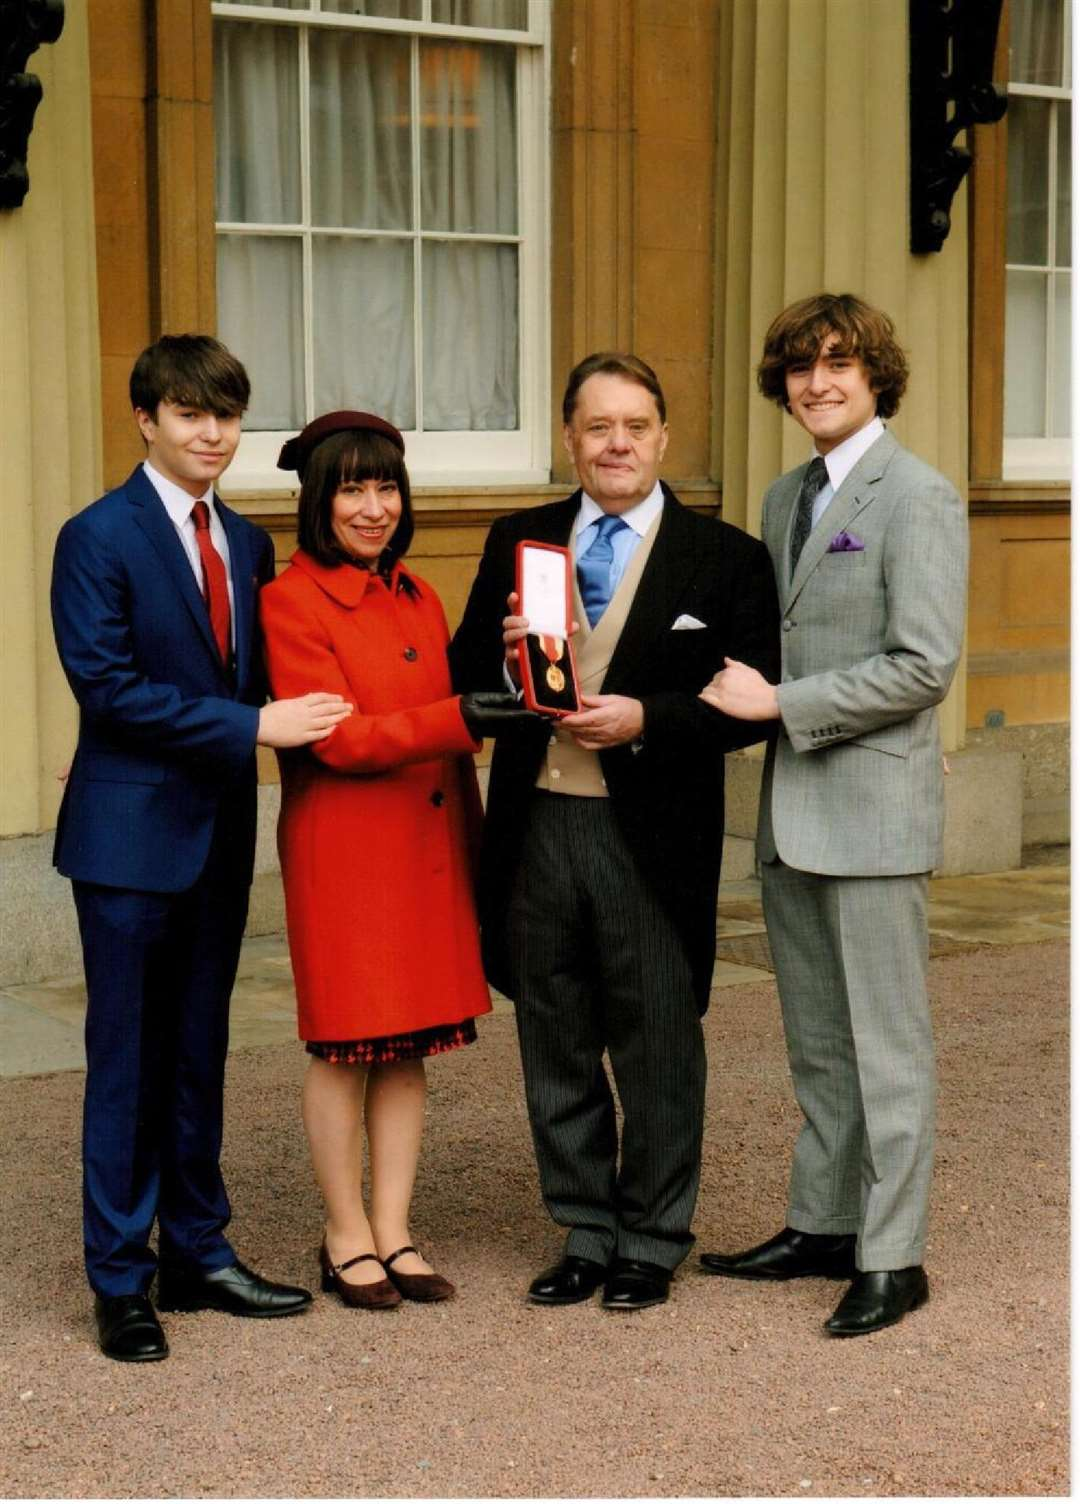 Sir John and Lady Hayes, with sons Edward (left) and William, outside Buckingham Palace after his knighthood. Photo supplied. (7373294)